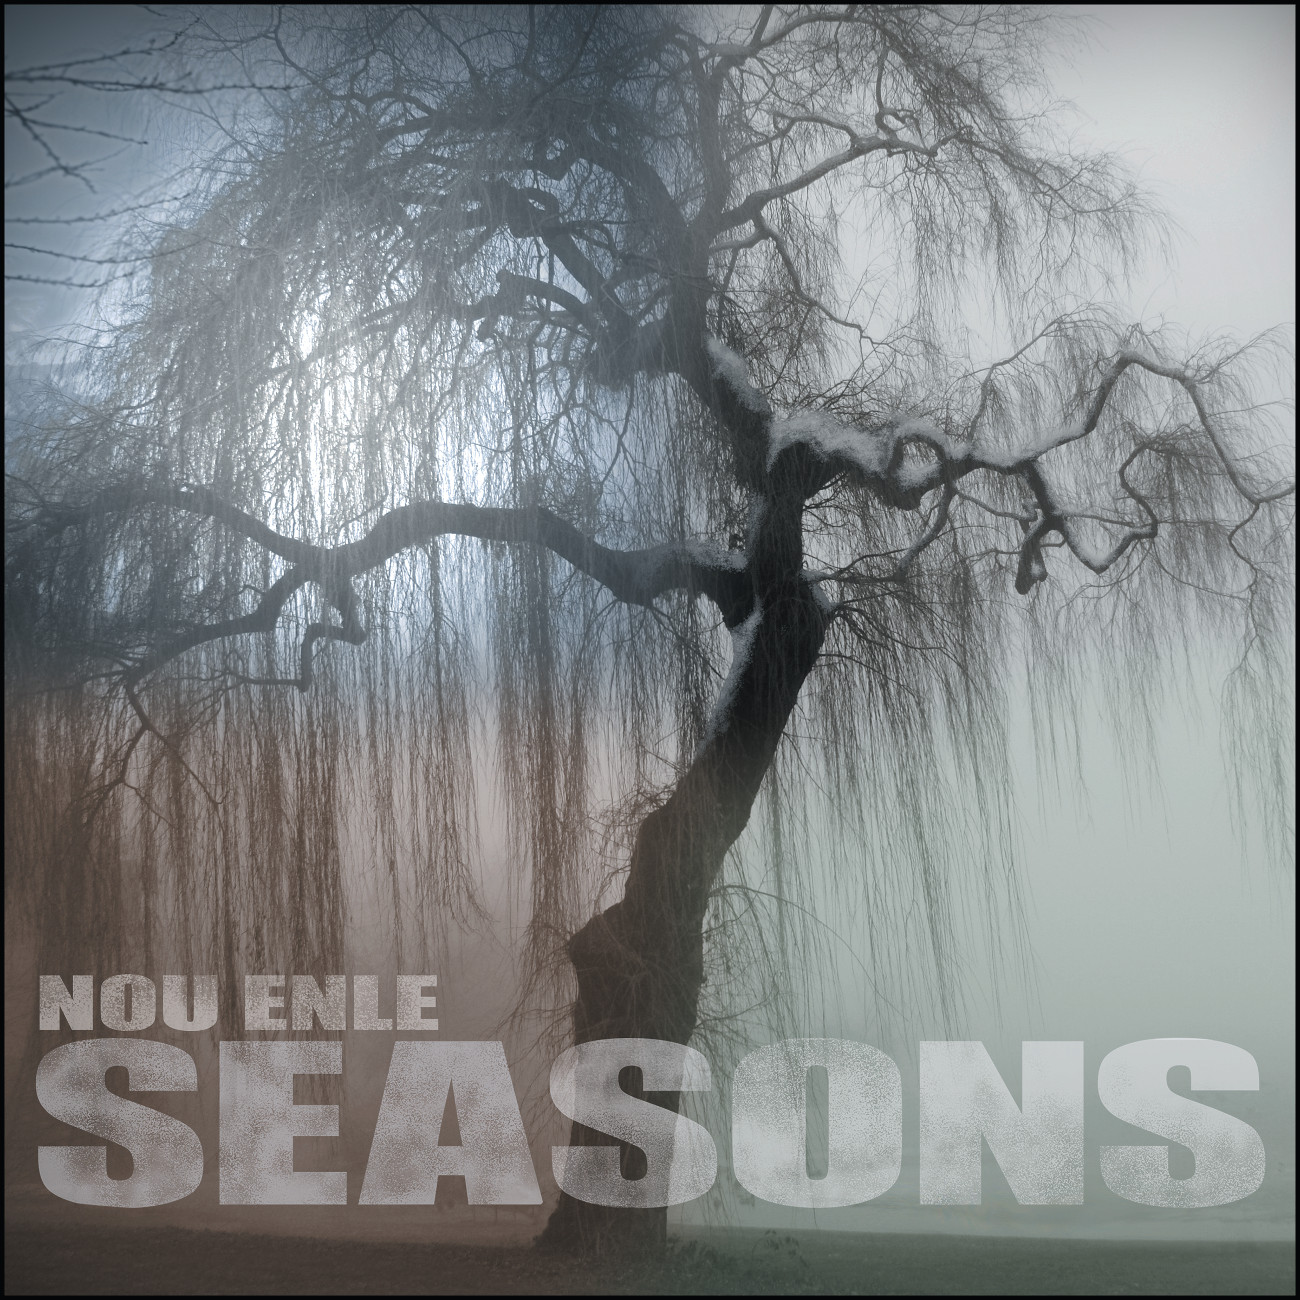 Seasons Album release next month!